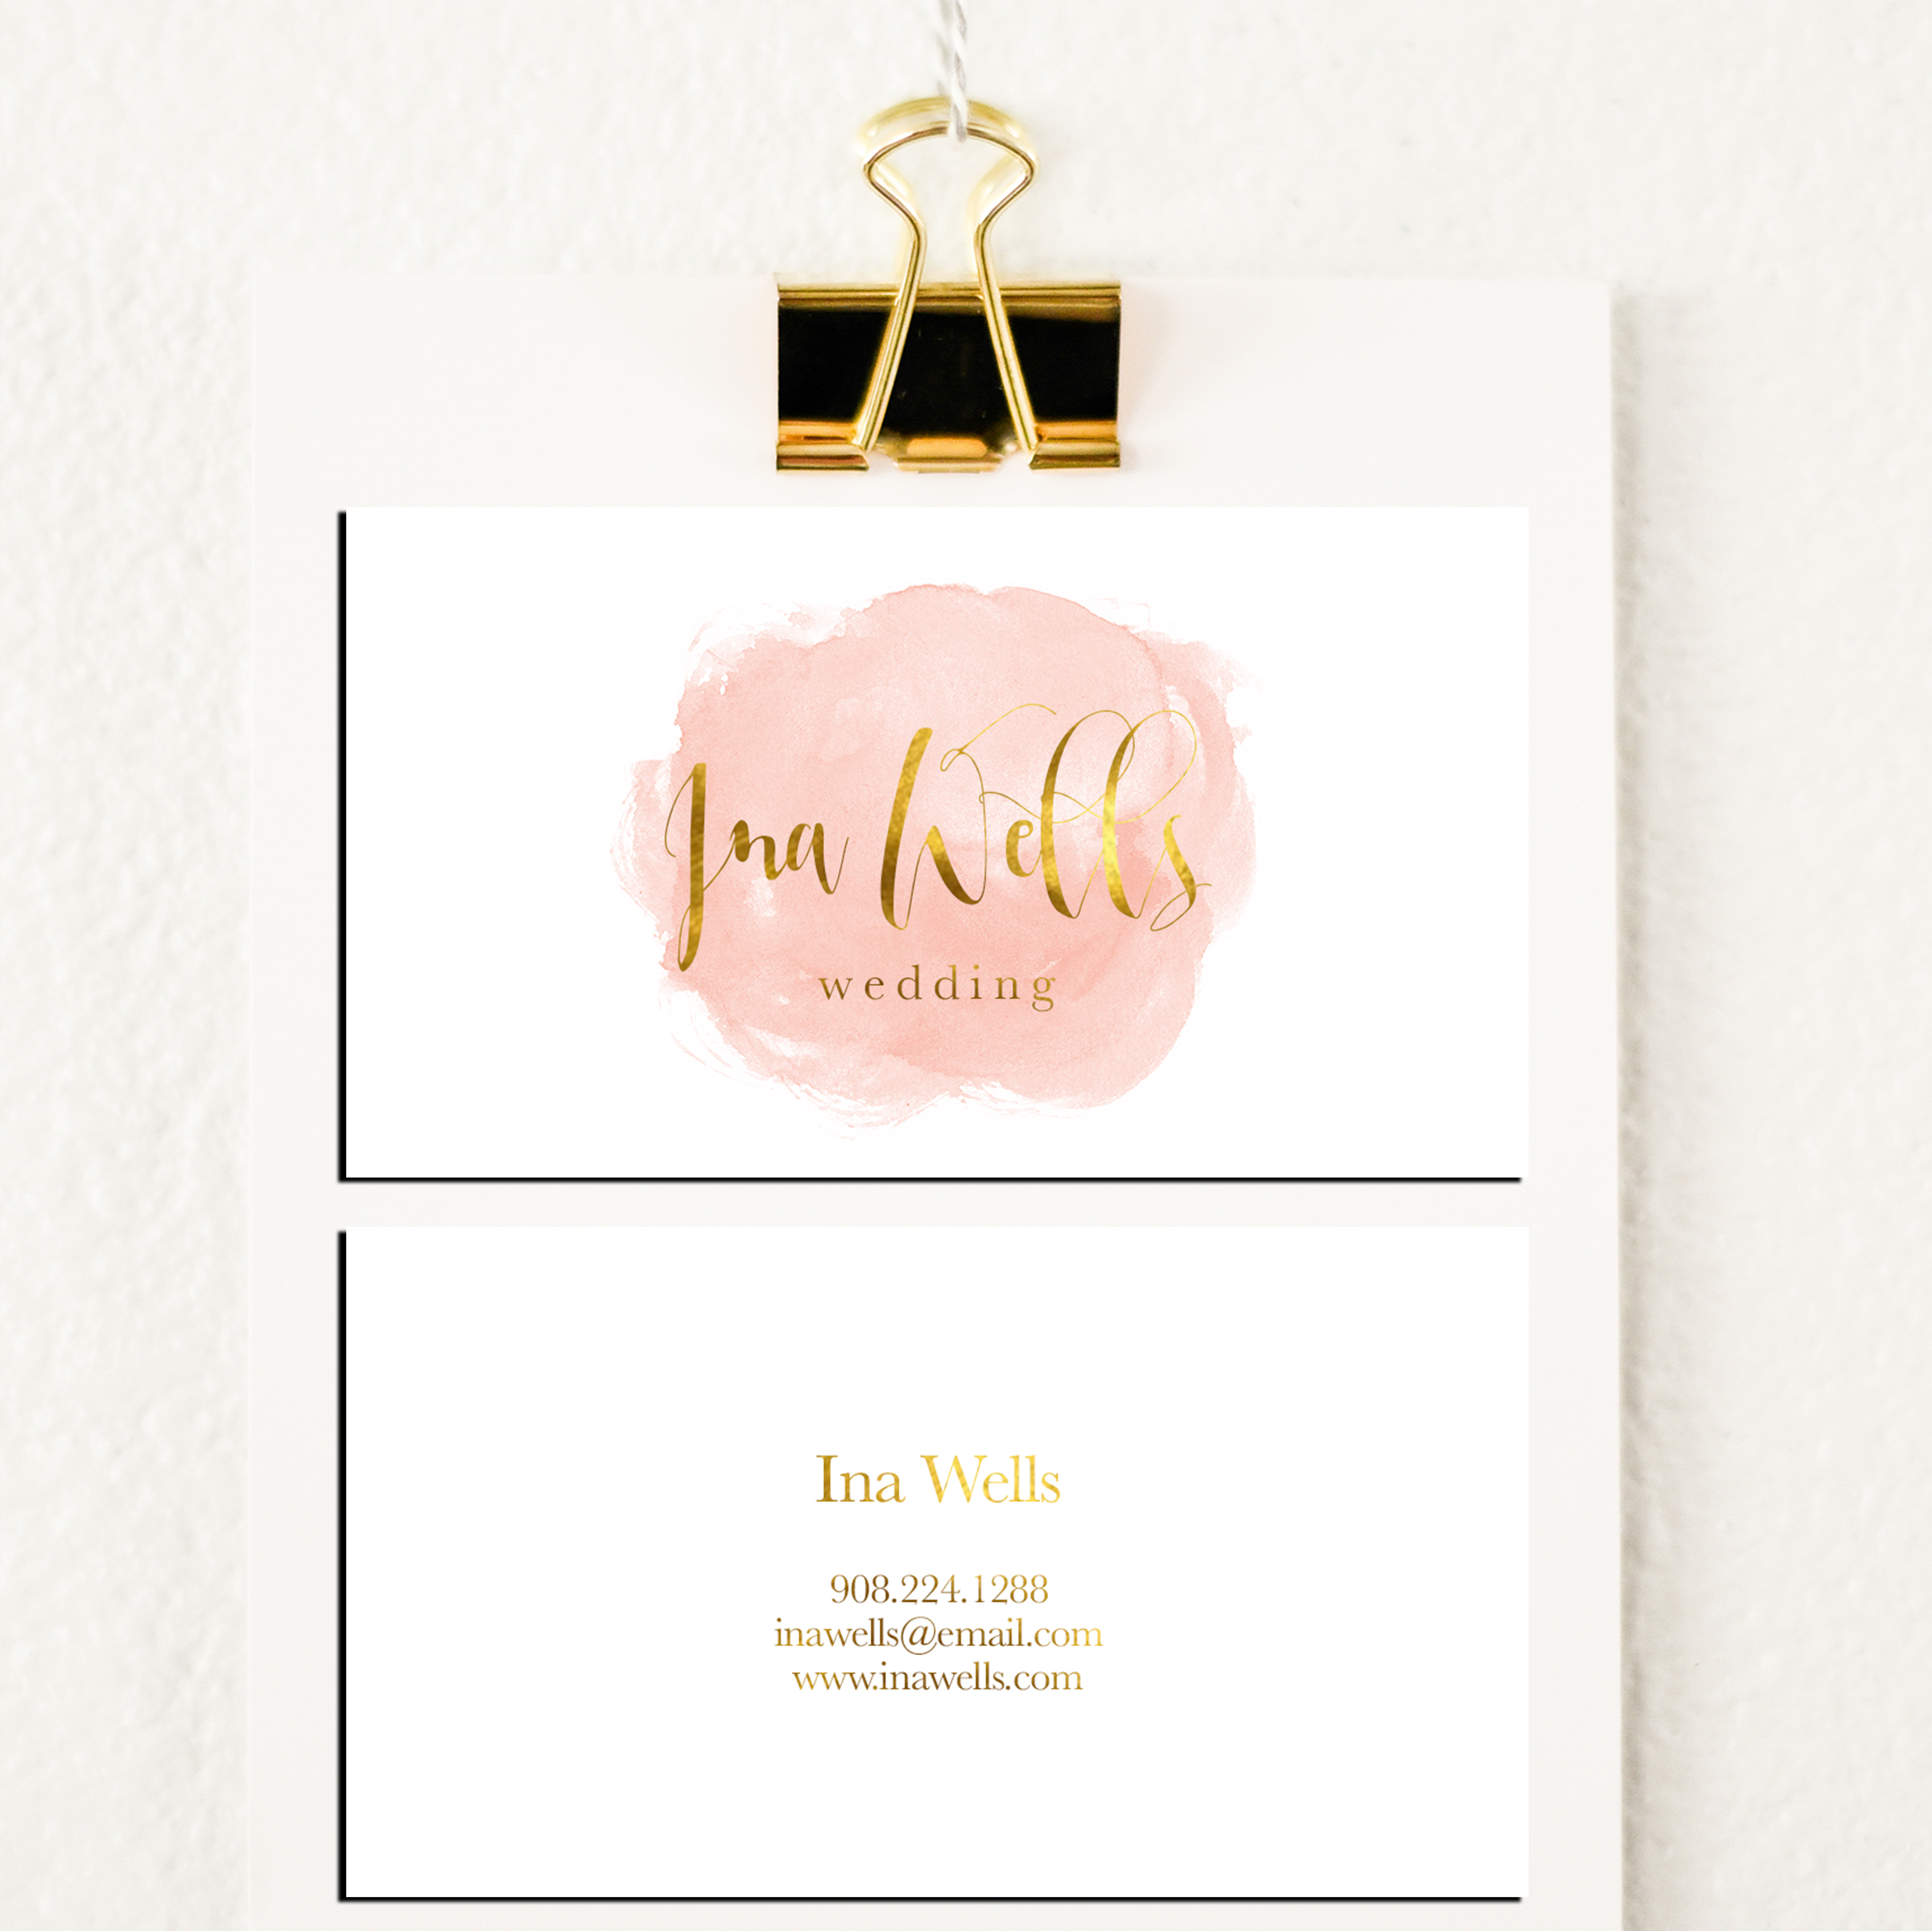 Watercolour wedding business card template inspiration cardfaves watercolour business card colourmoves